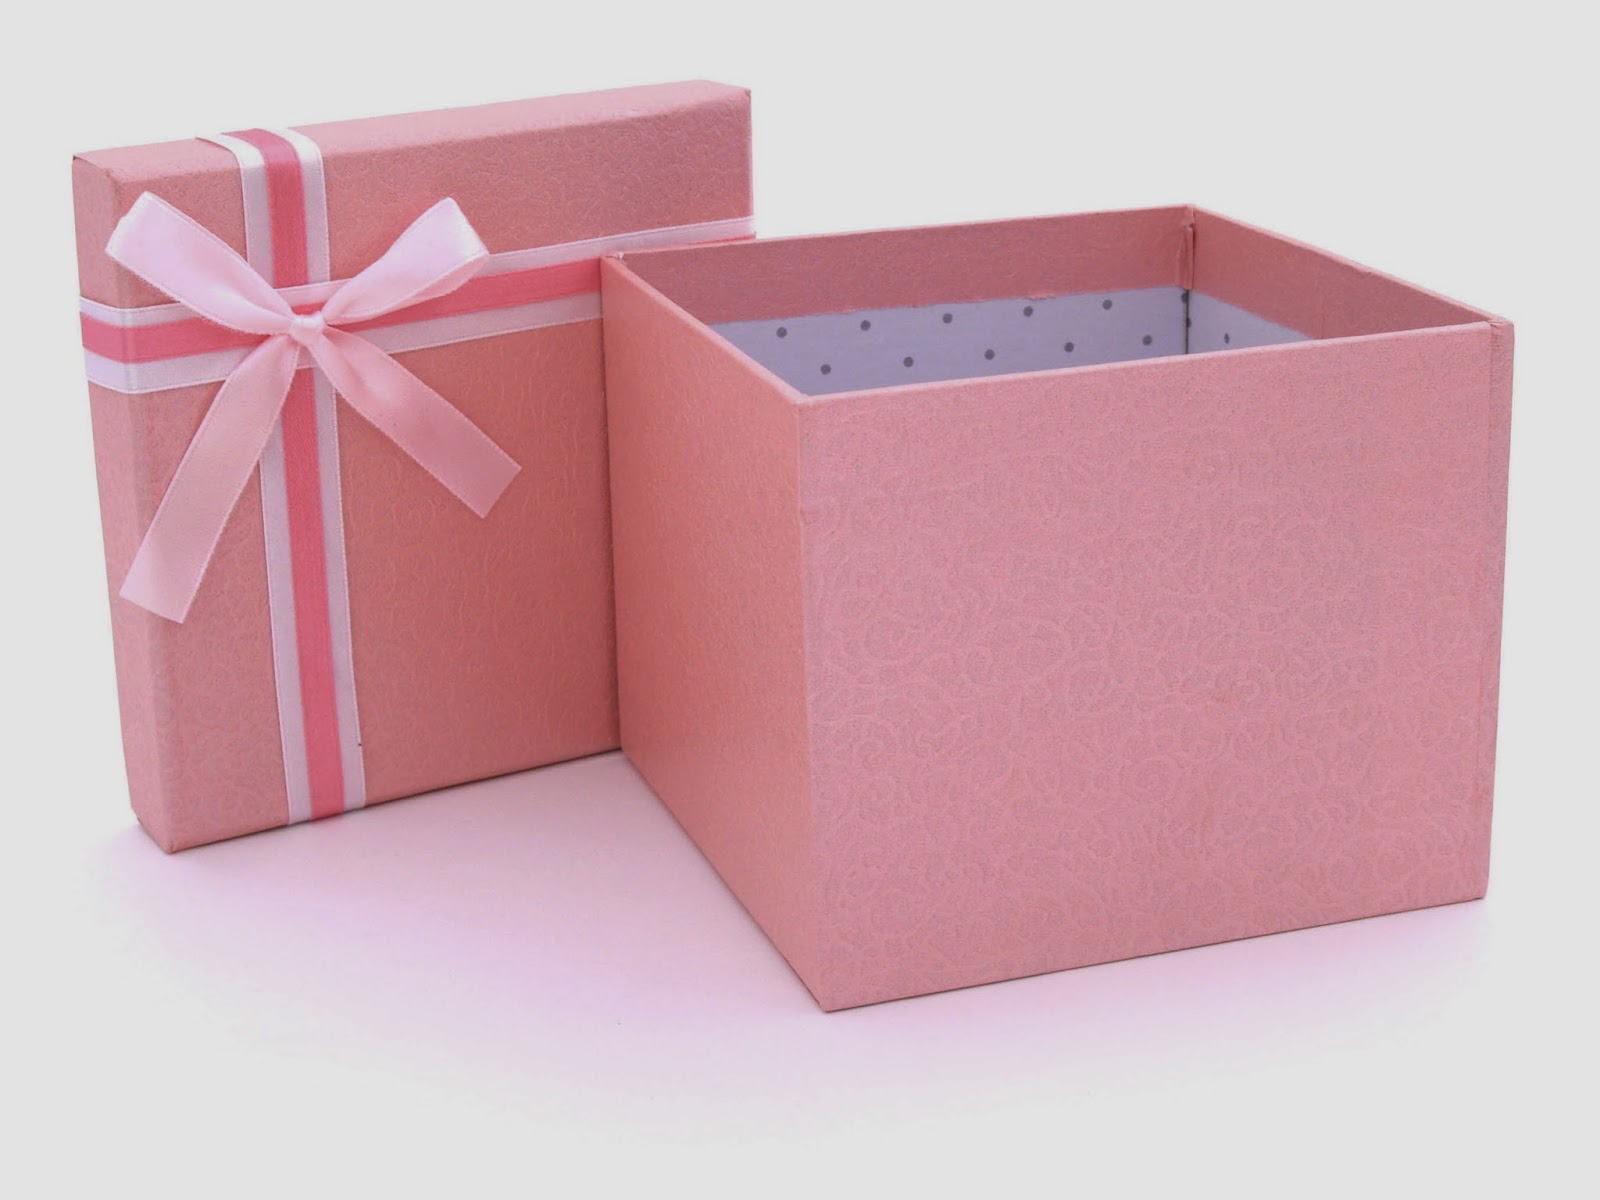 Gift box - Source: Wikimedia Commons